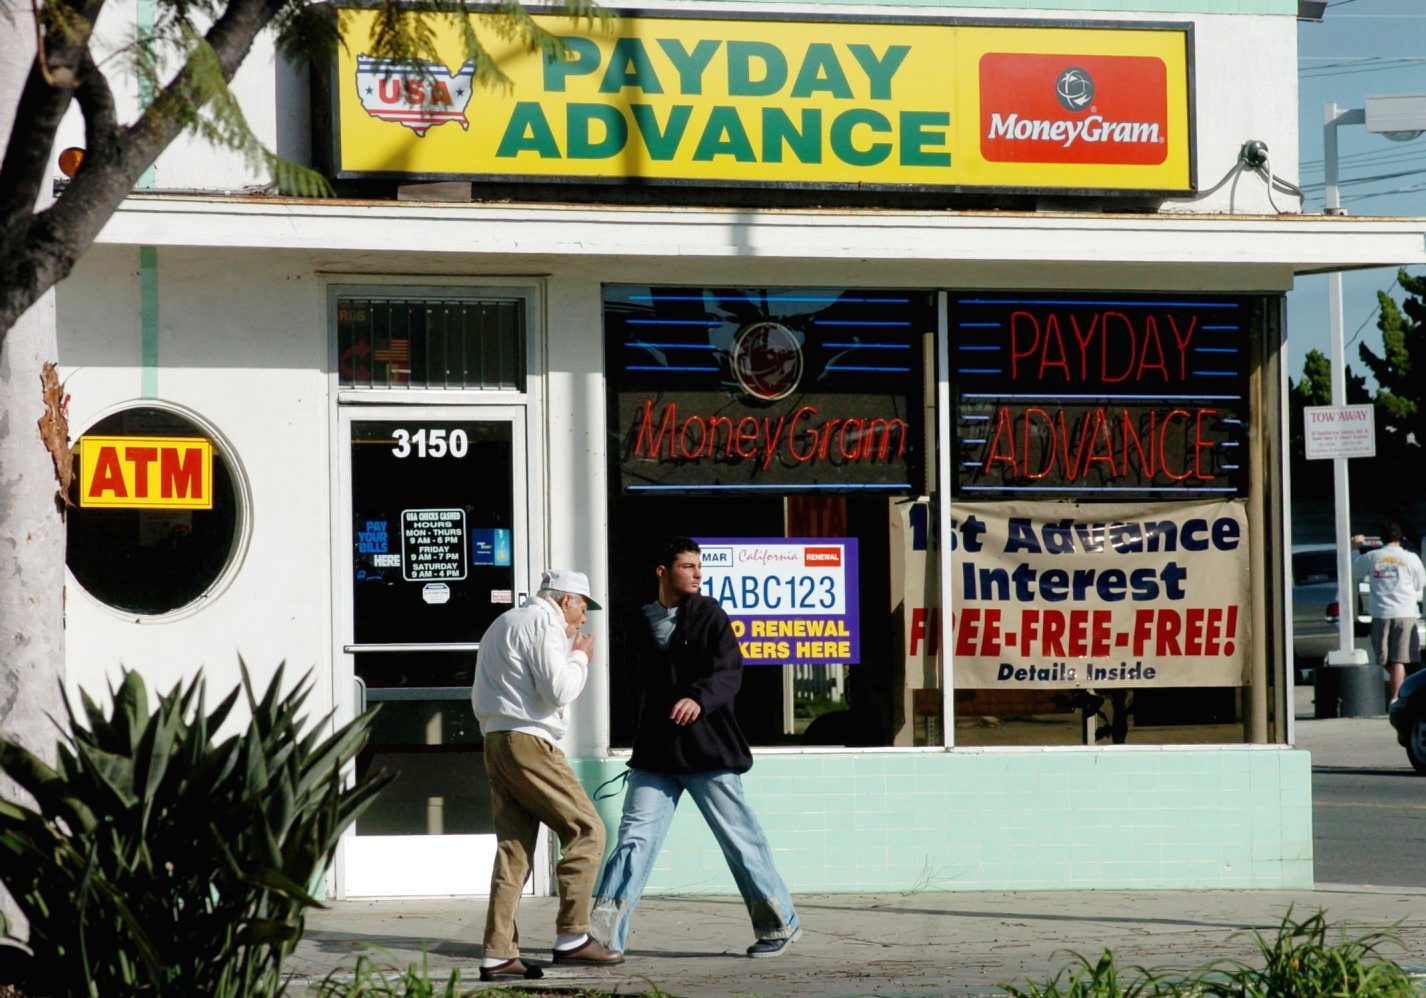 Payday lending has been receiving more scrutiny.